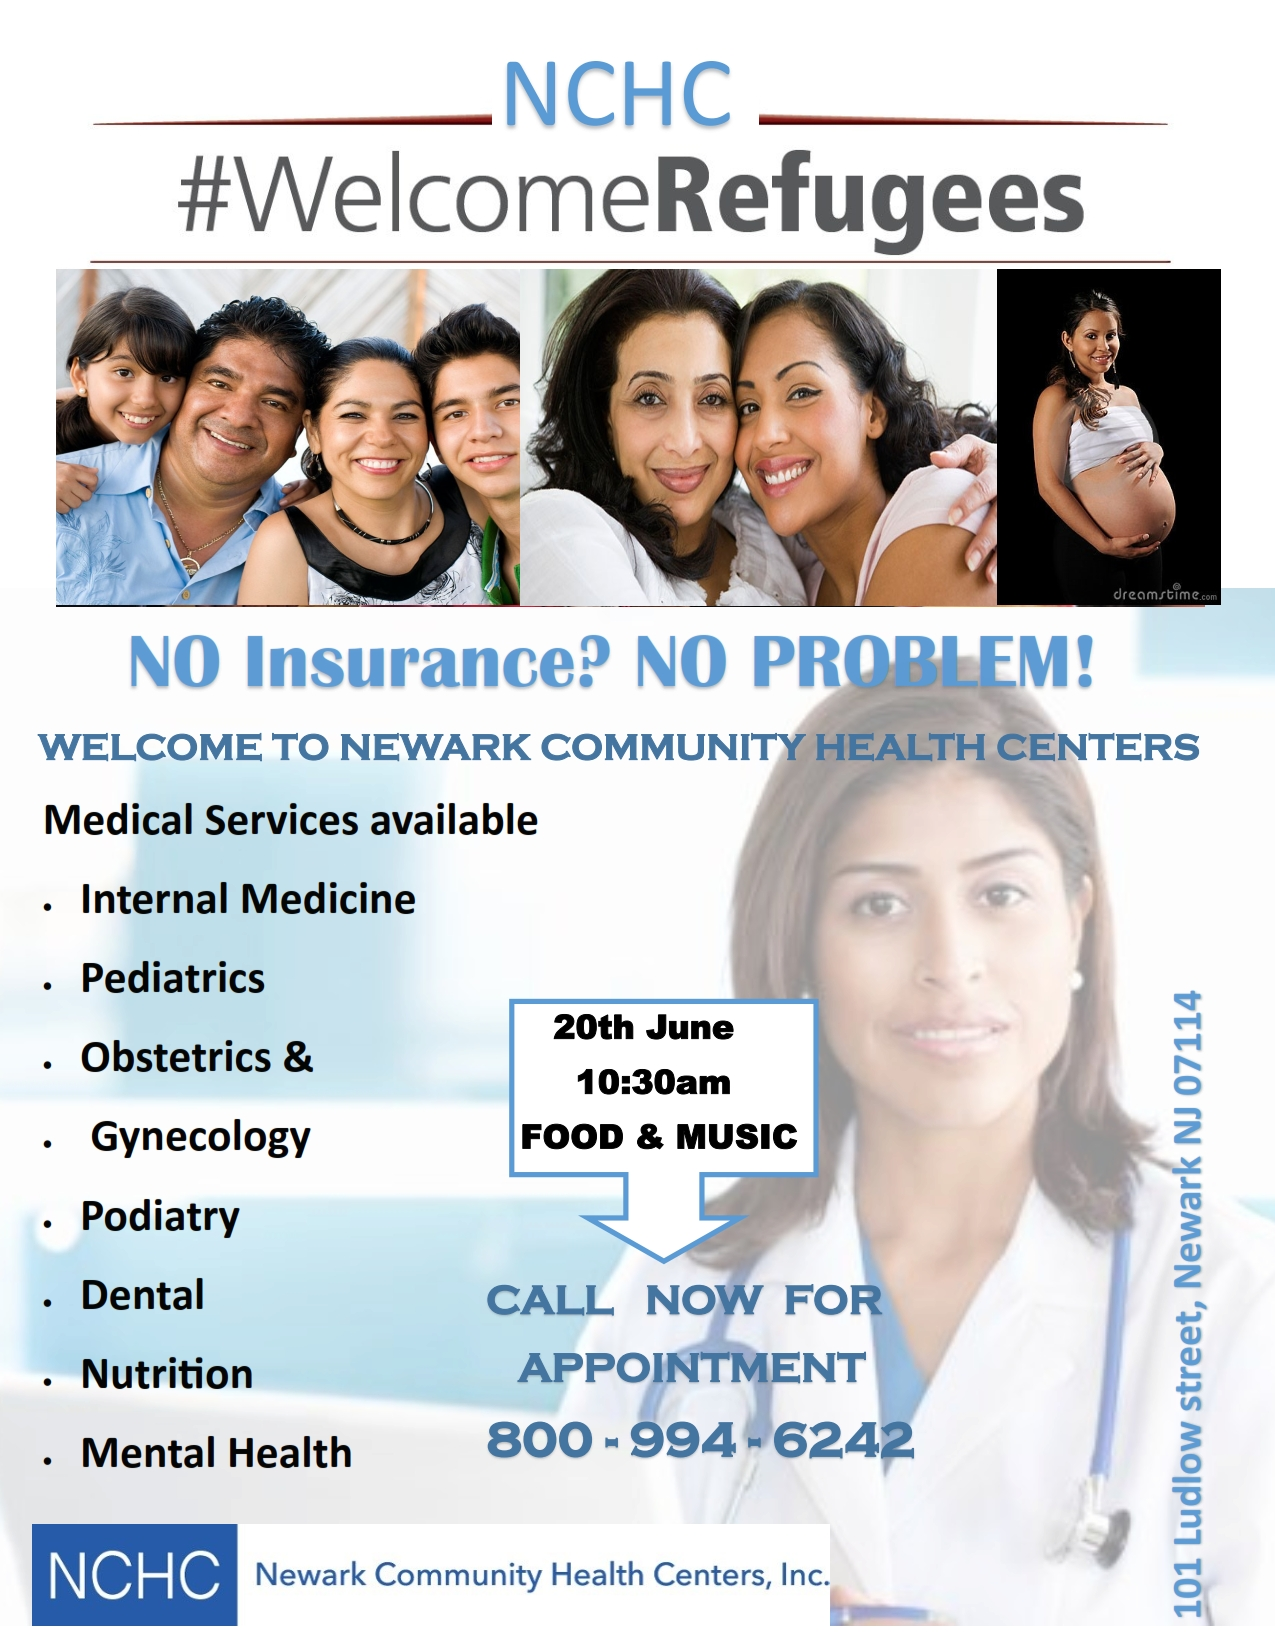 Nchc Welcomes Refugees Newark Community Health Center